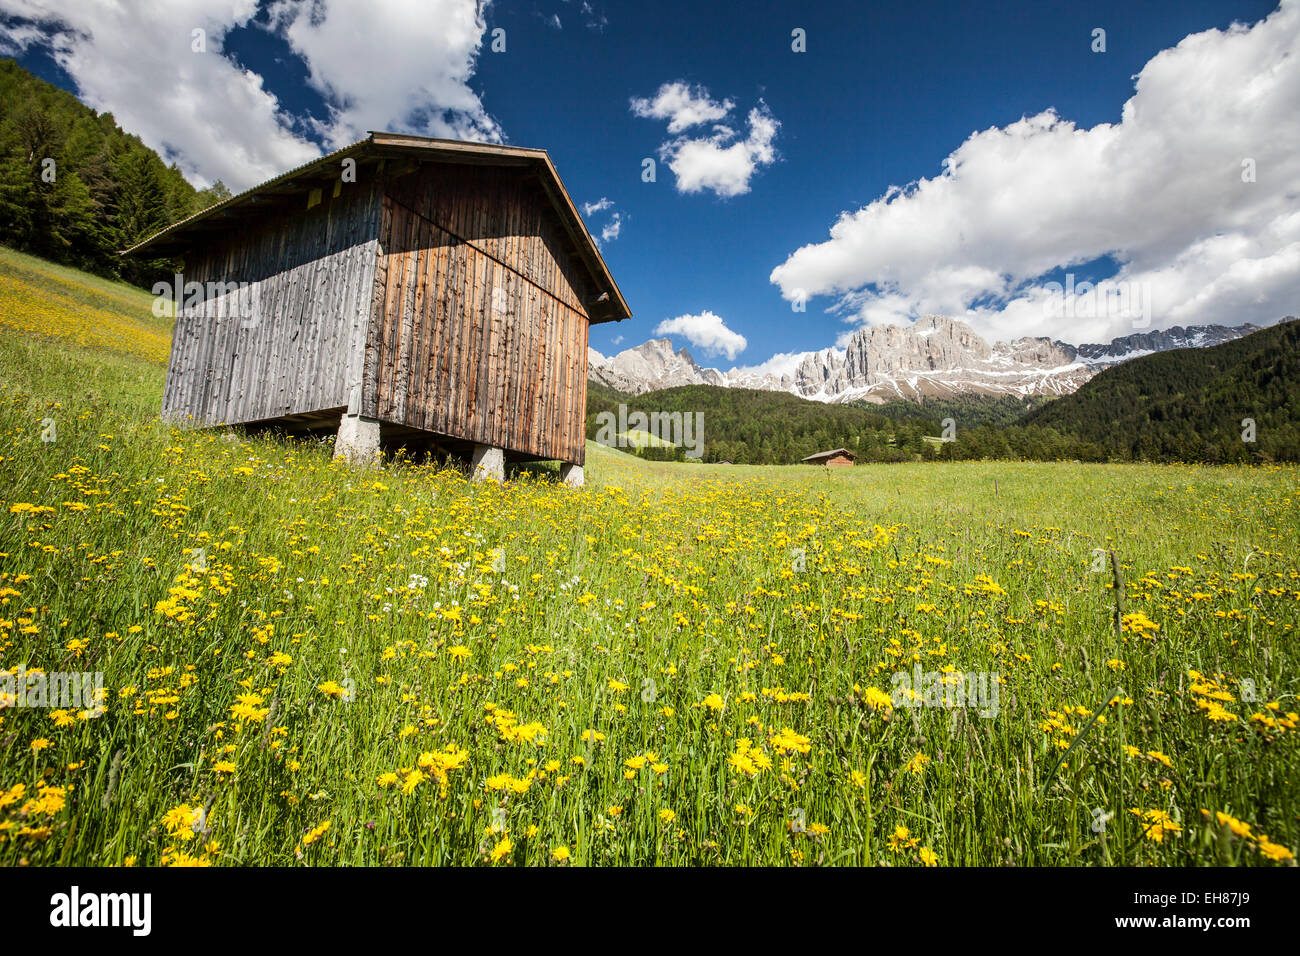 A typical mountain hut in the Tires Valley, by the Catinaccio Group and Lake Carezza in the Dolomites, South Tyrol, - Stock Image